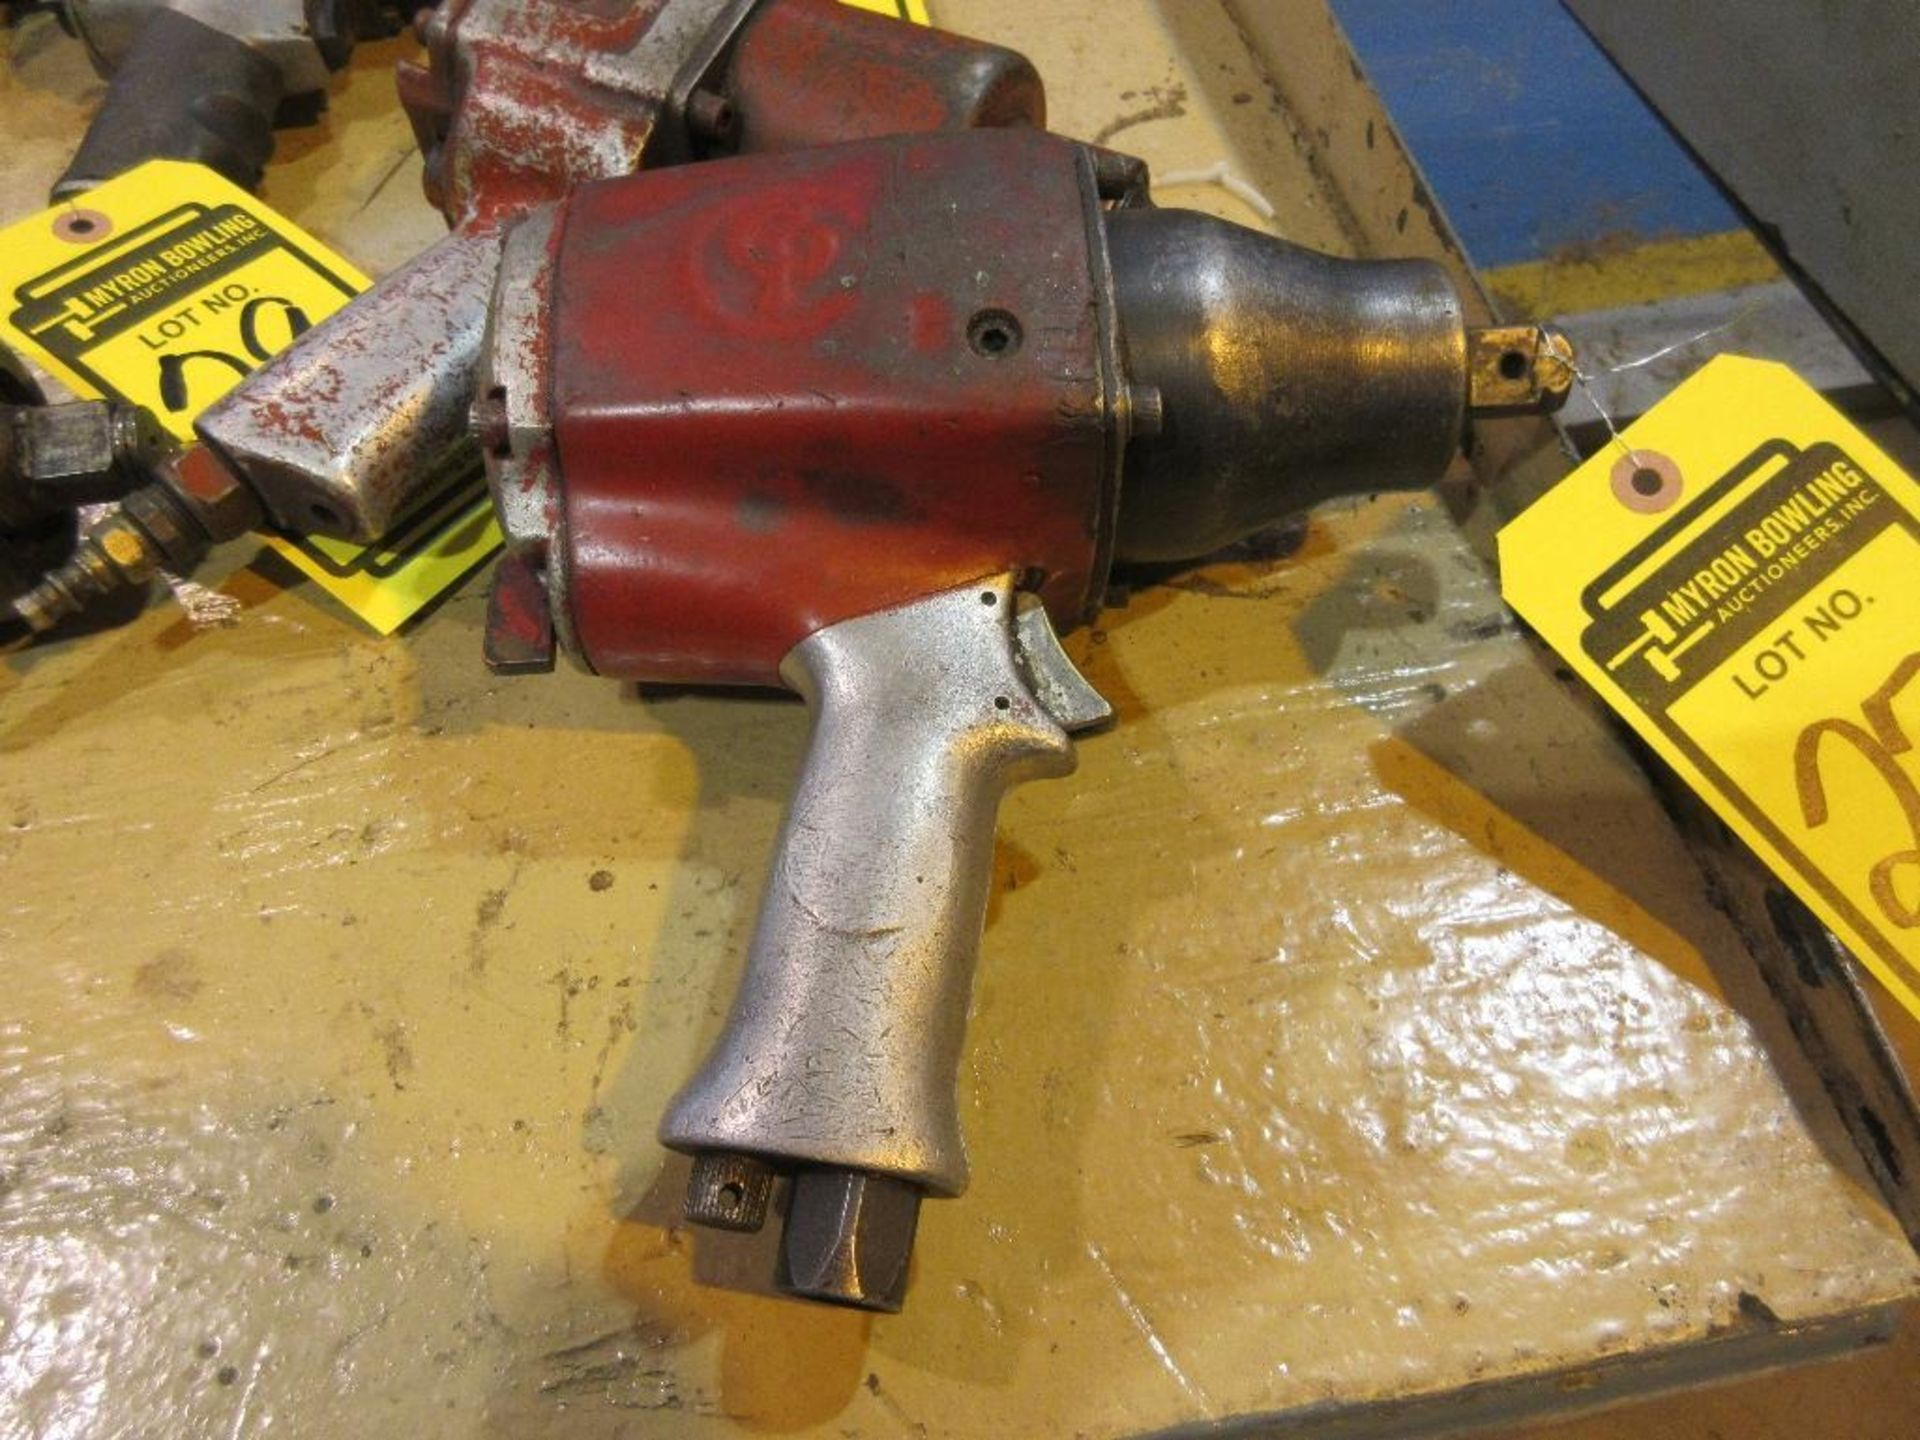 CP 3/4 IN. PNEUMATIC IMPACT WRENCH